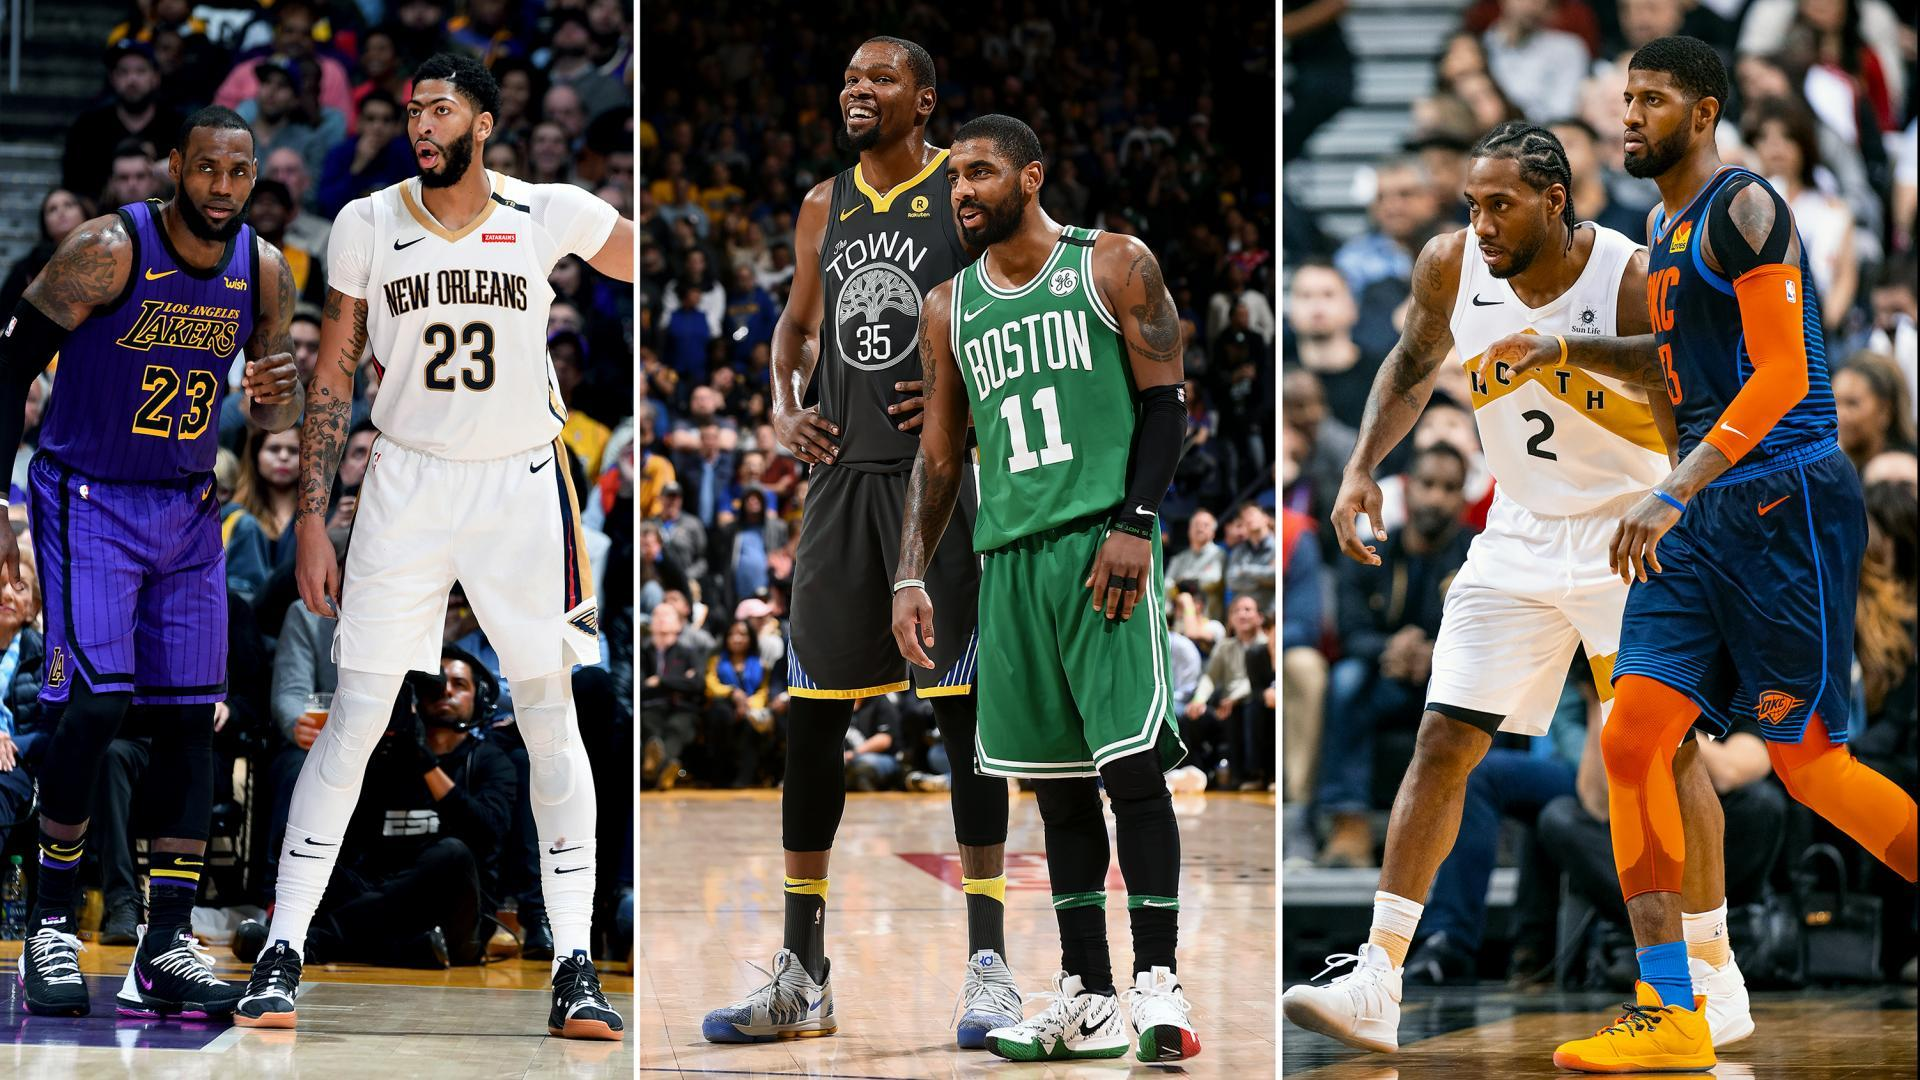 NBA Power Duos Kevin Durant Kyrie Irving LeBron James Anthony Davis Kawhi Leonard George Paul Stephen Curry Klay Thompson James Harden Russell Westbrook